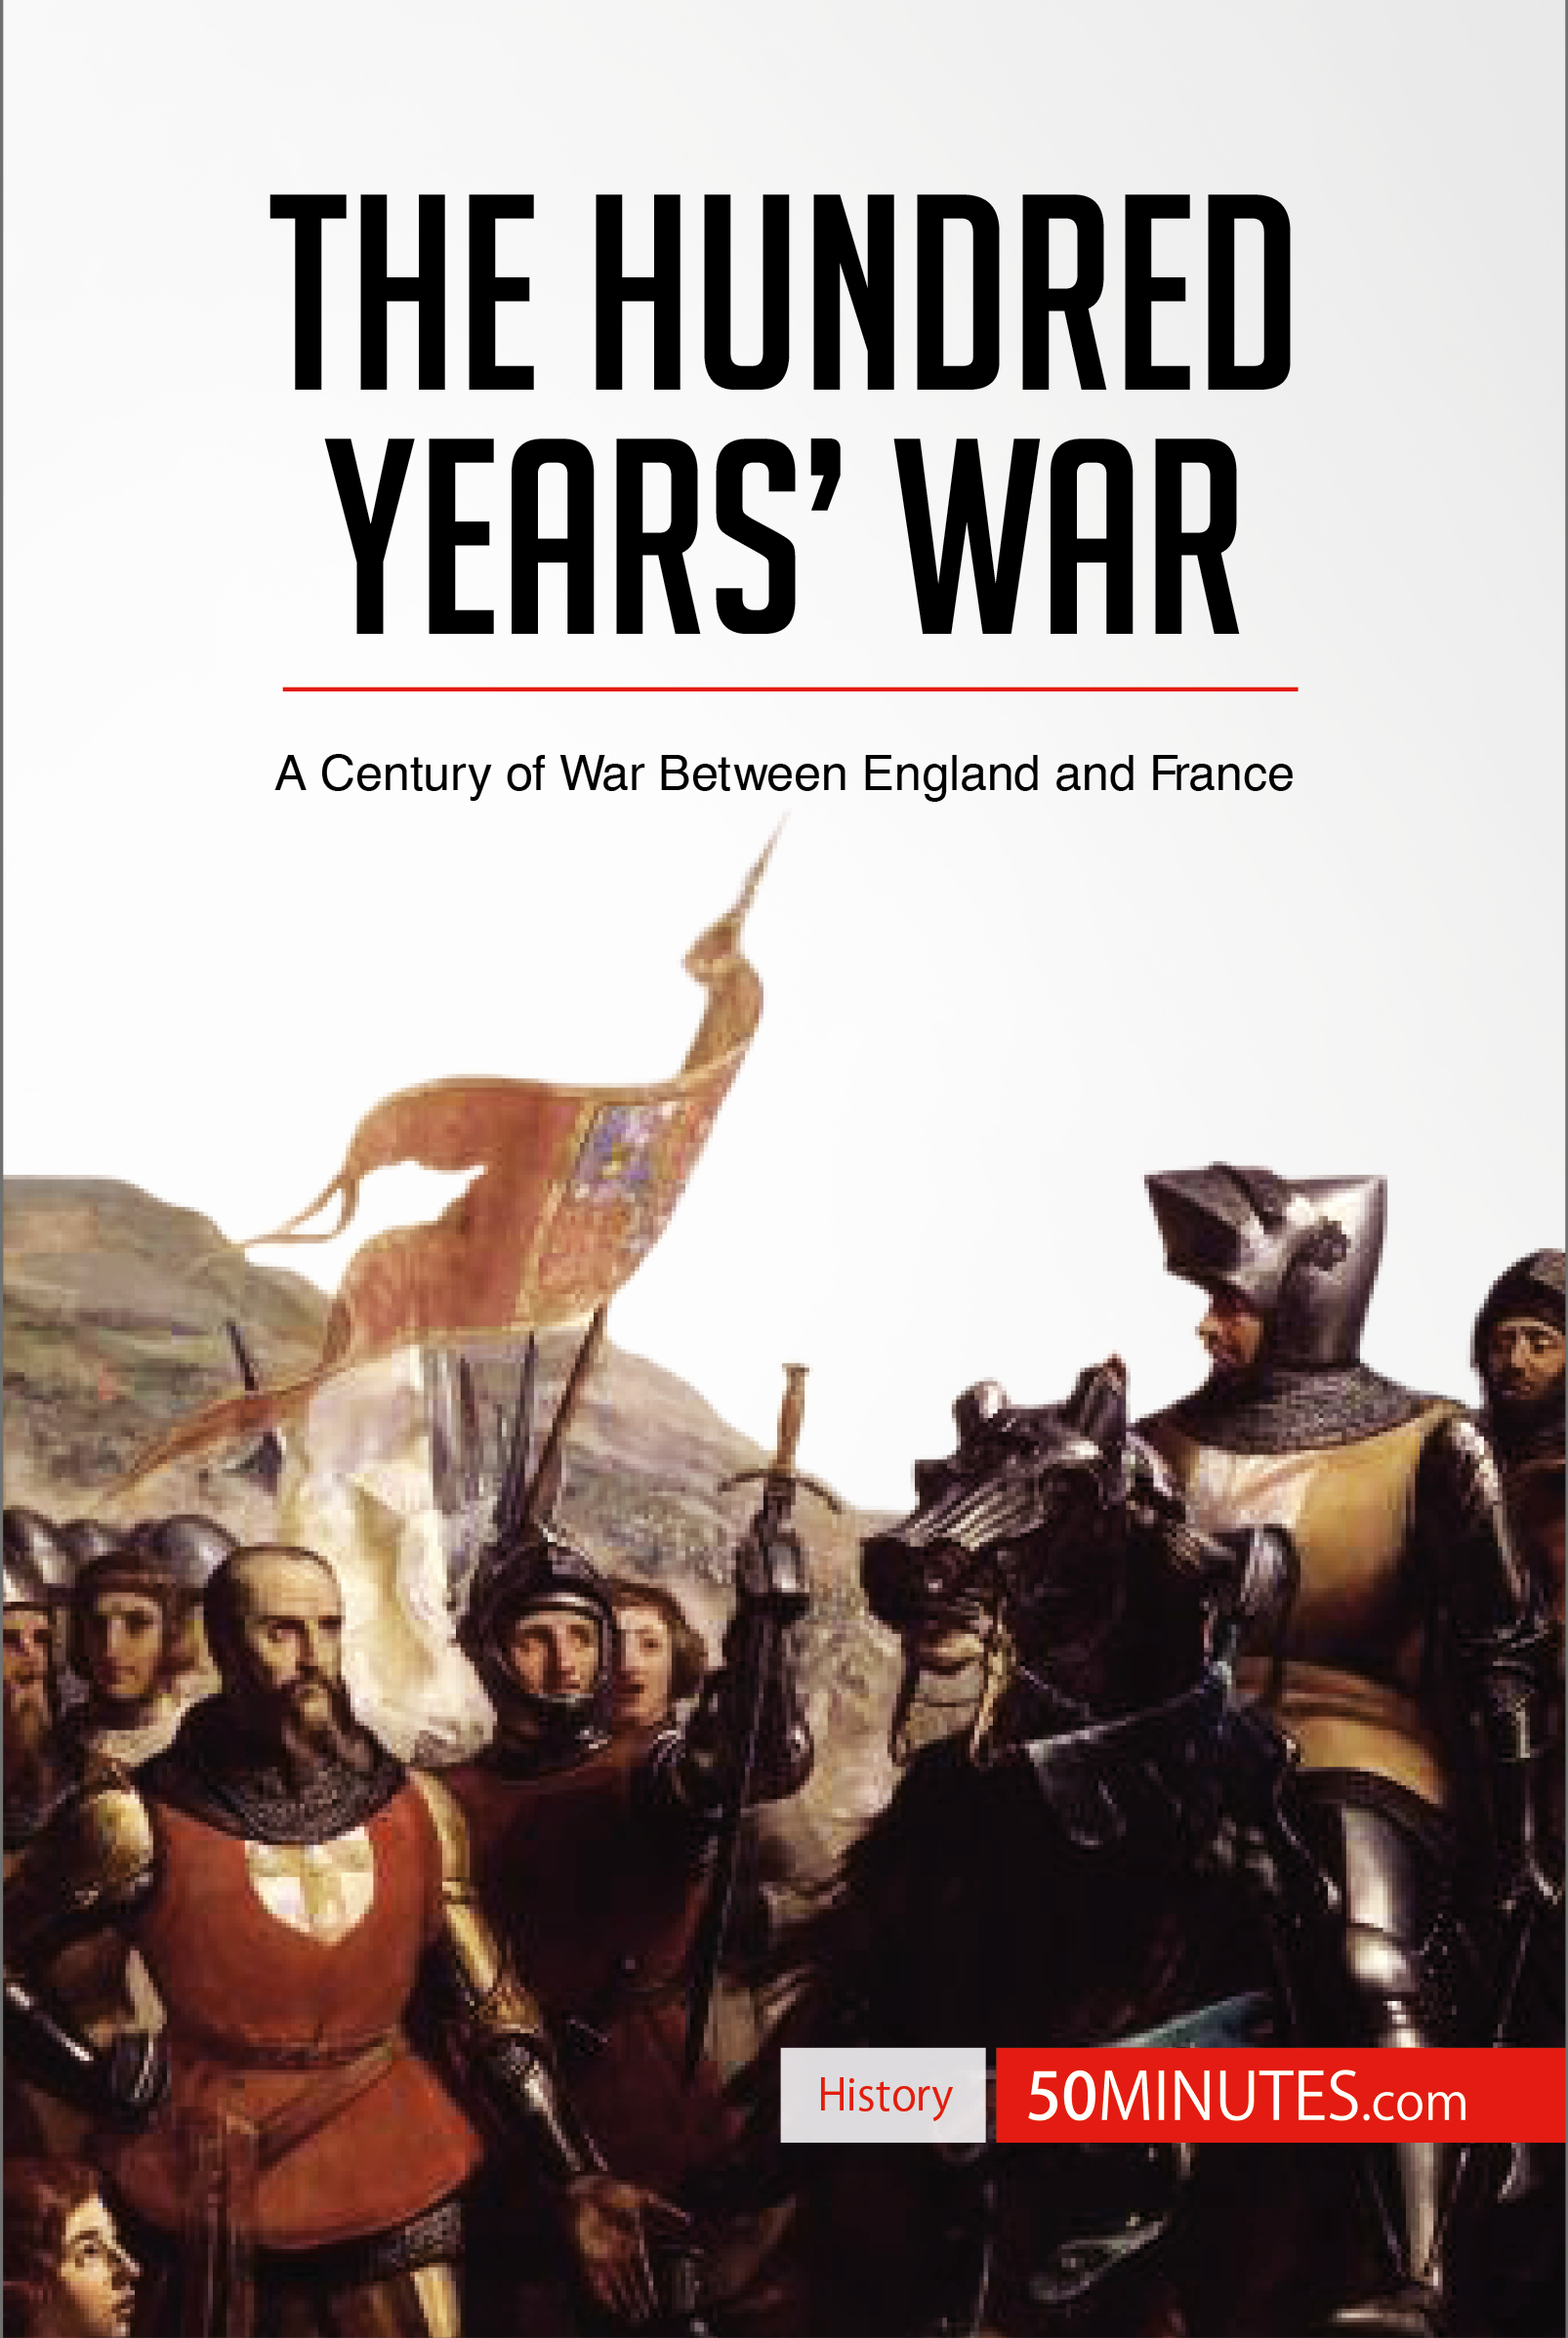 The Hundred Years' War